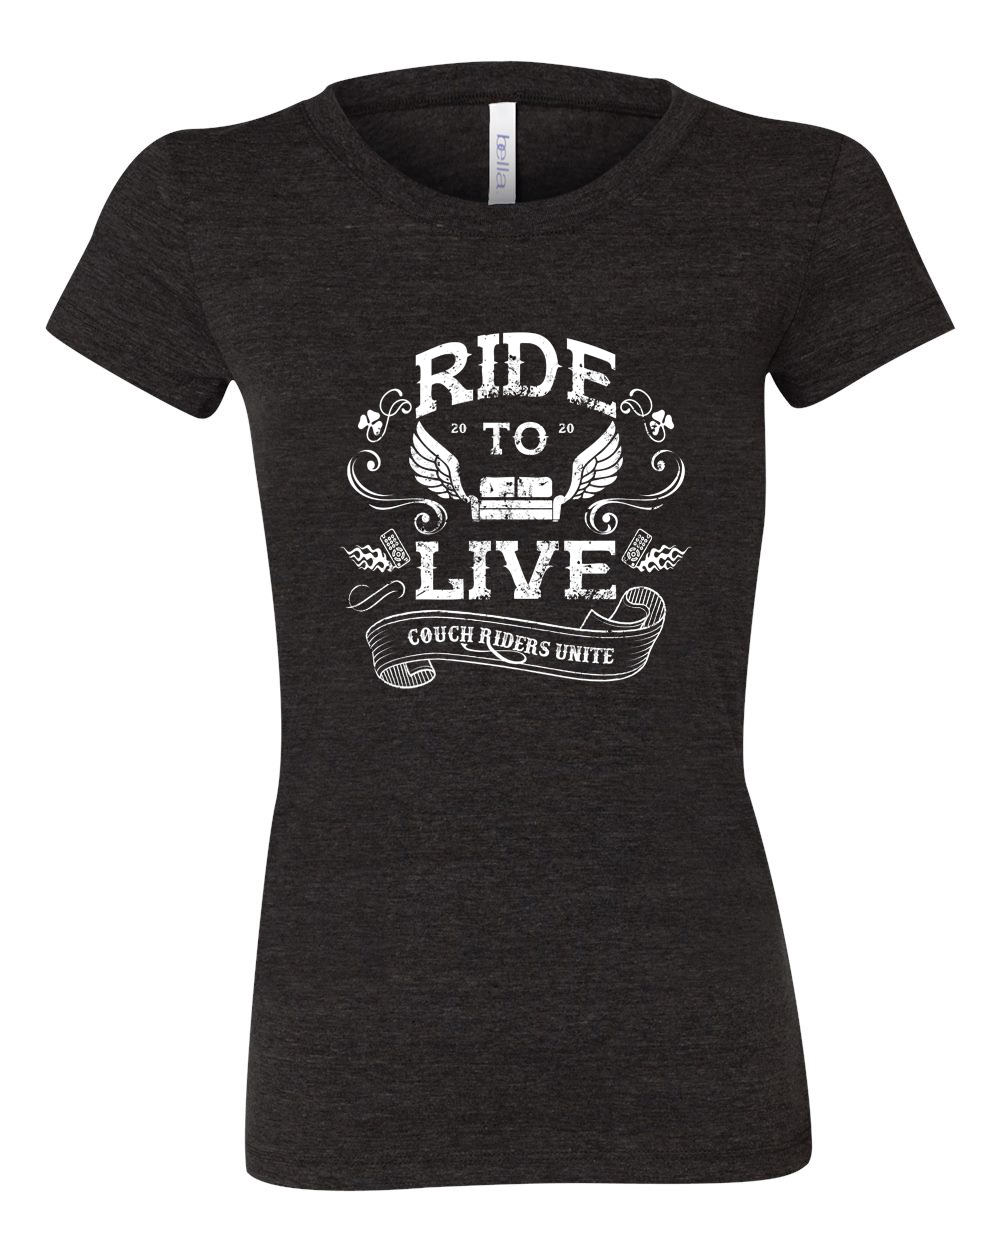 Ride to Live, Couch Riders Unitie Ladies T-Shirt Design.